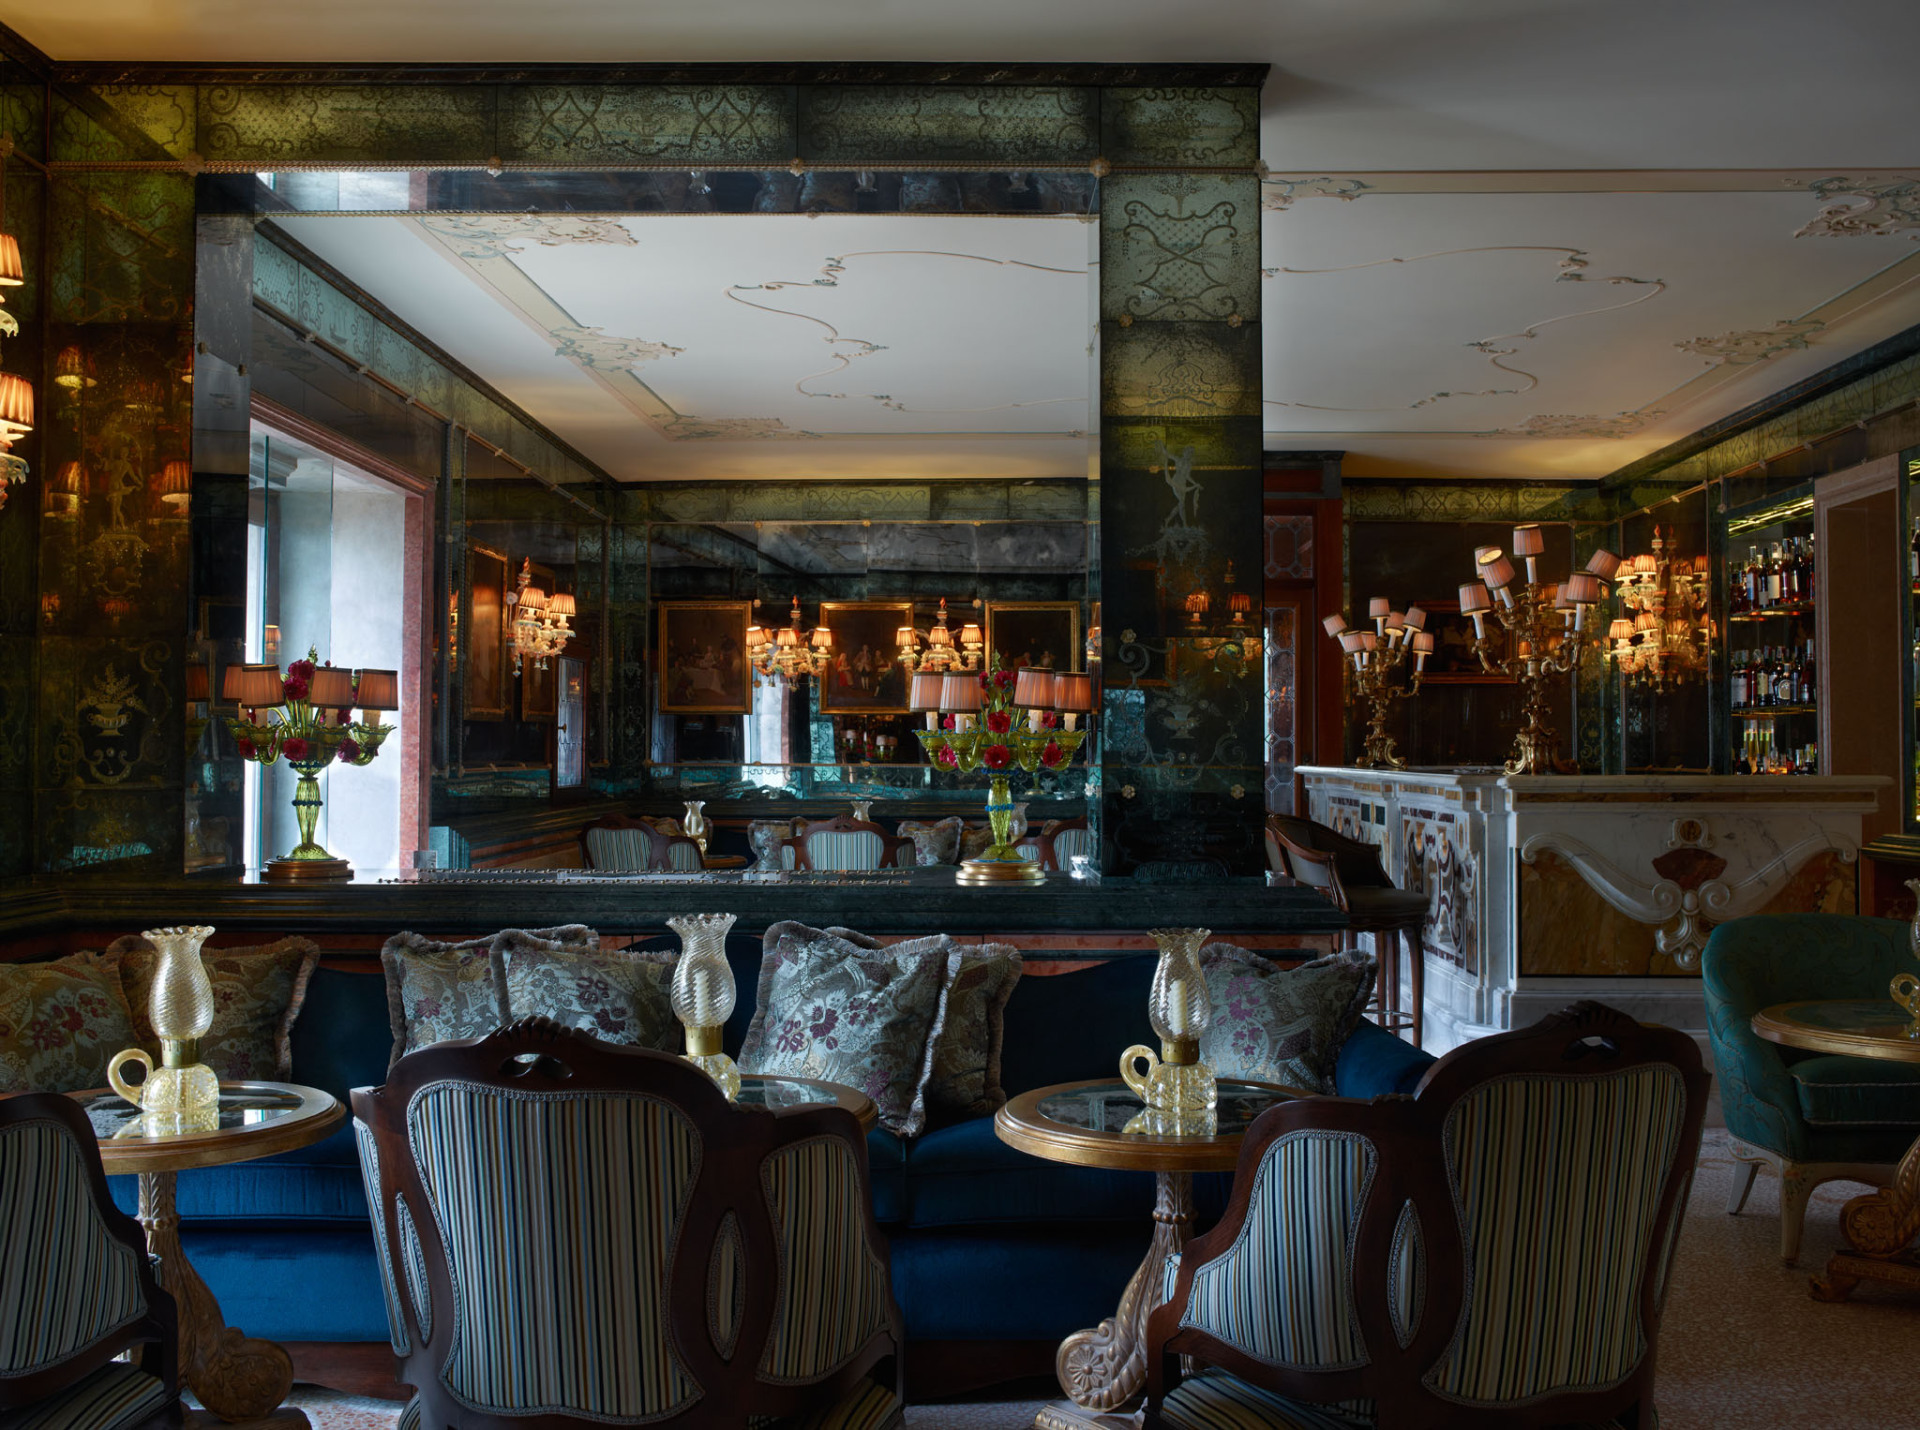 The Gritti Palace Bar Longhi